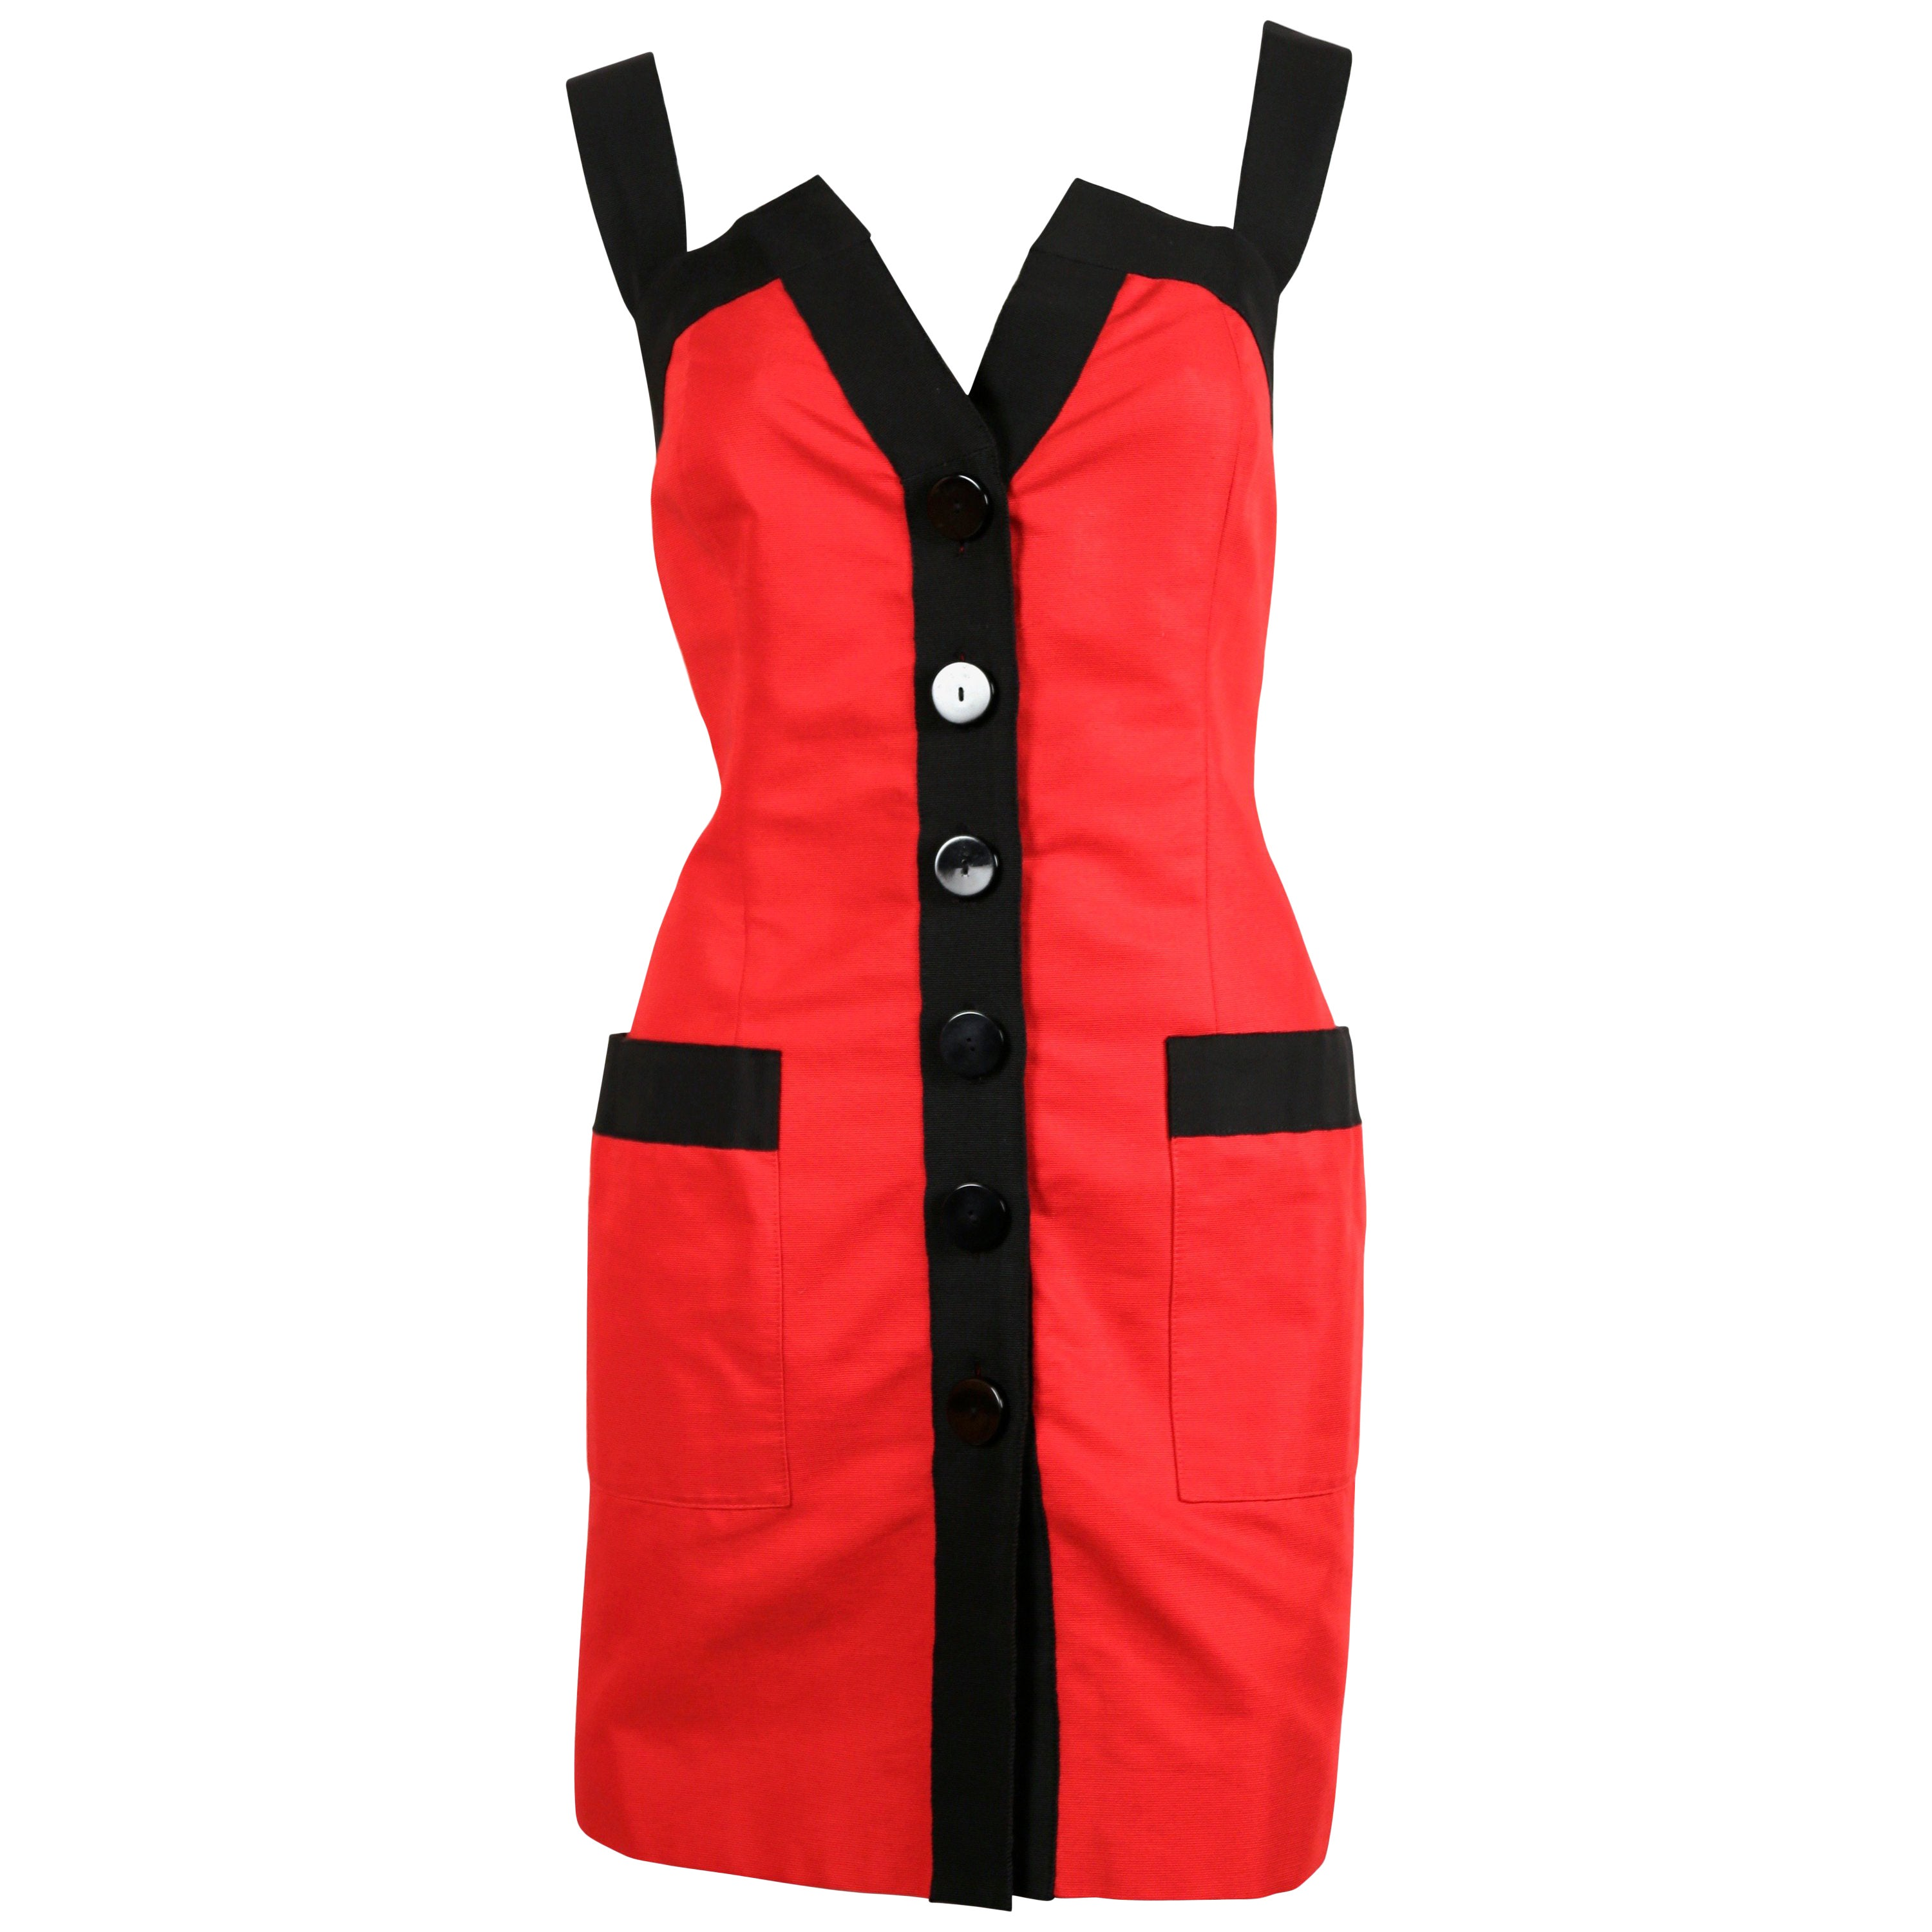 Yves Saint Laurent red dress with black trim, 1990s